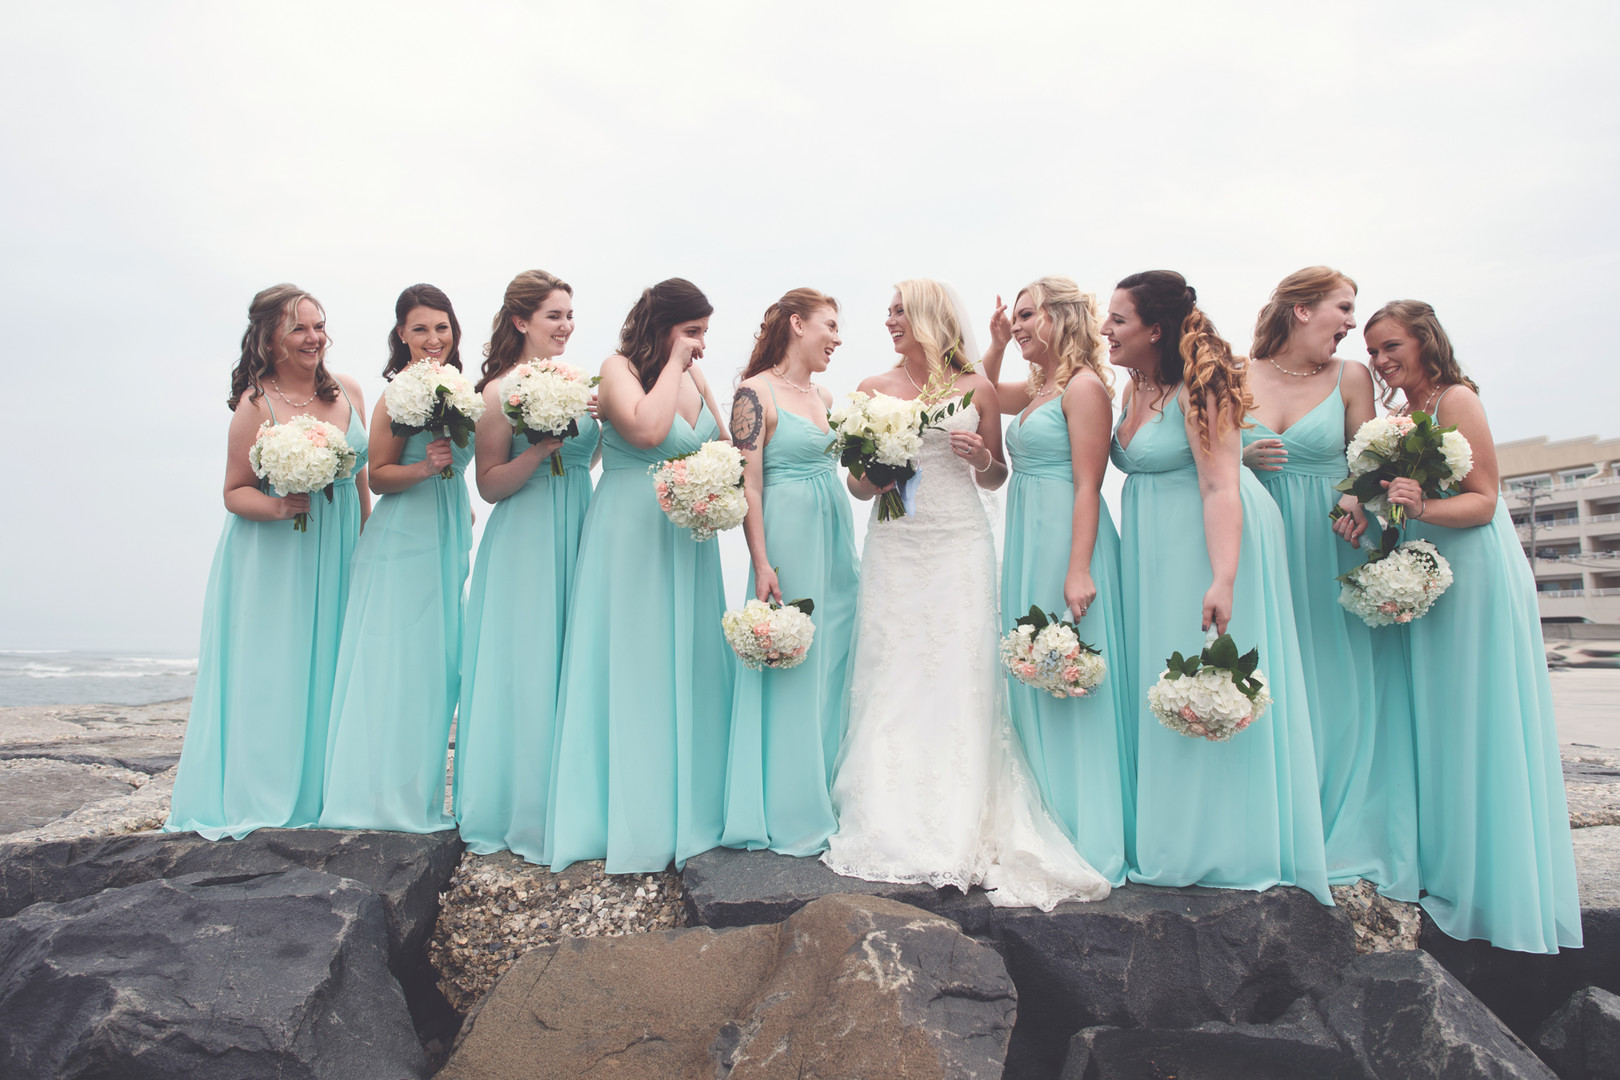 wildwood nj bridal party photo on the beach